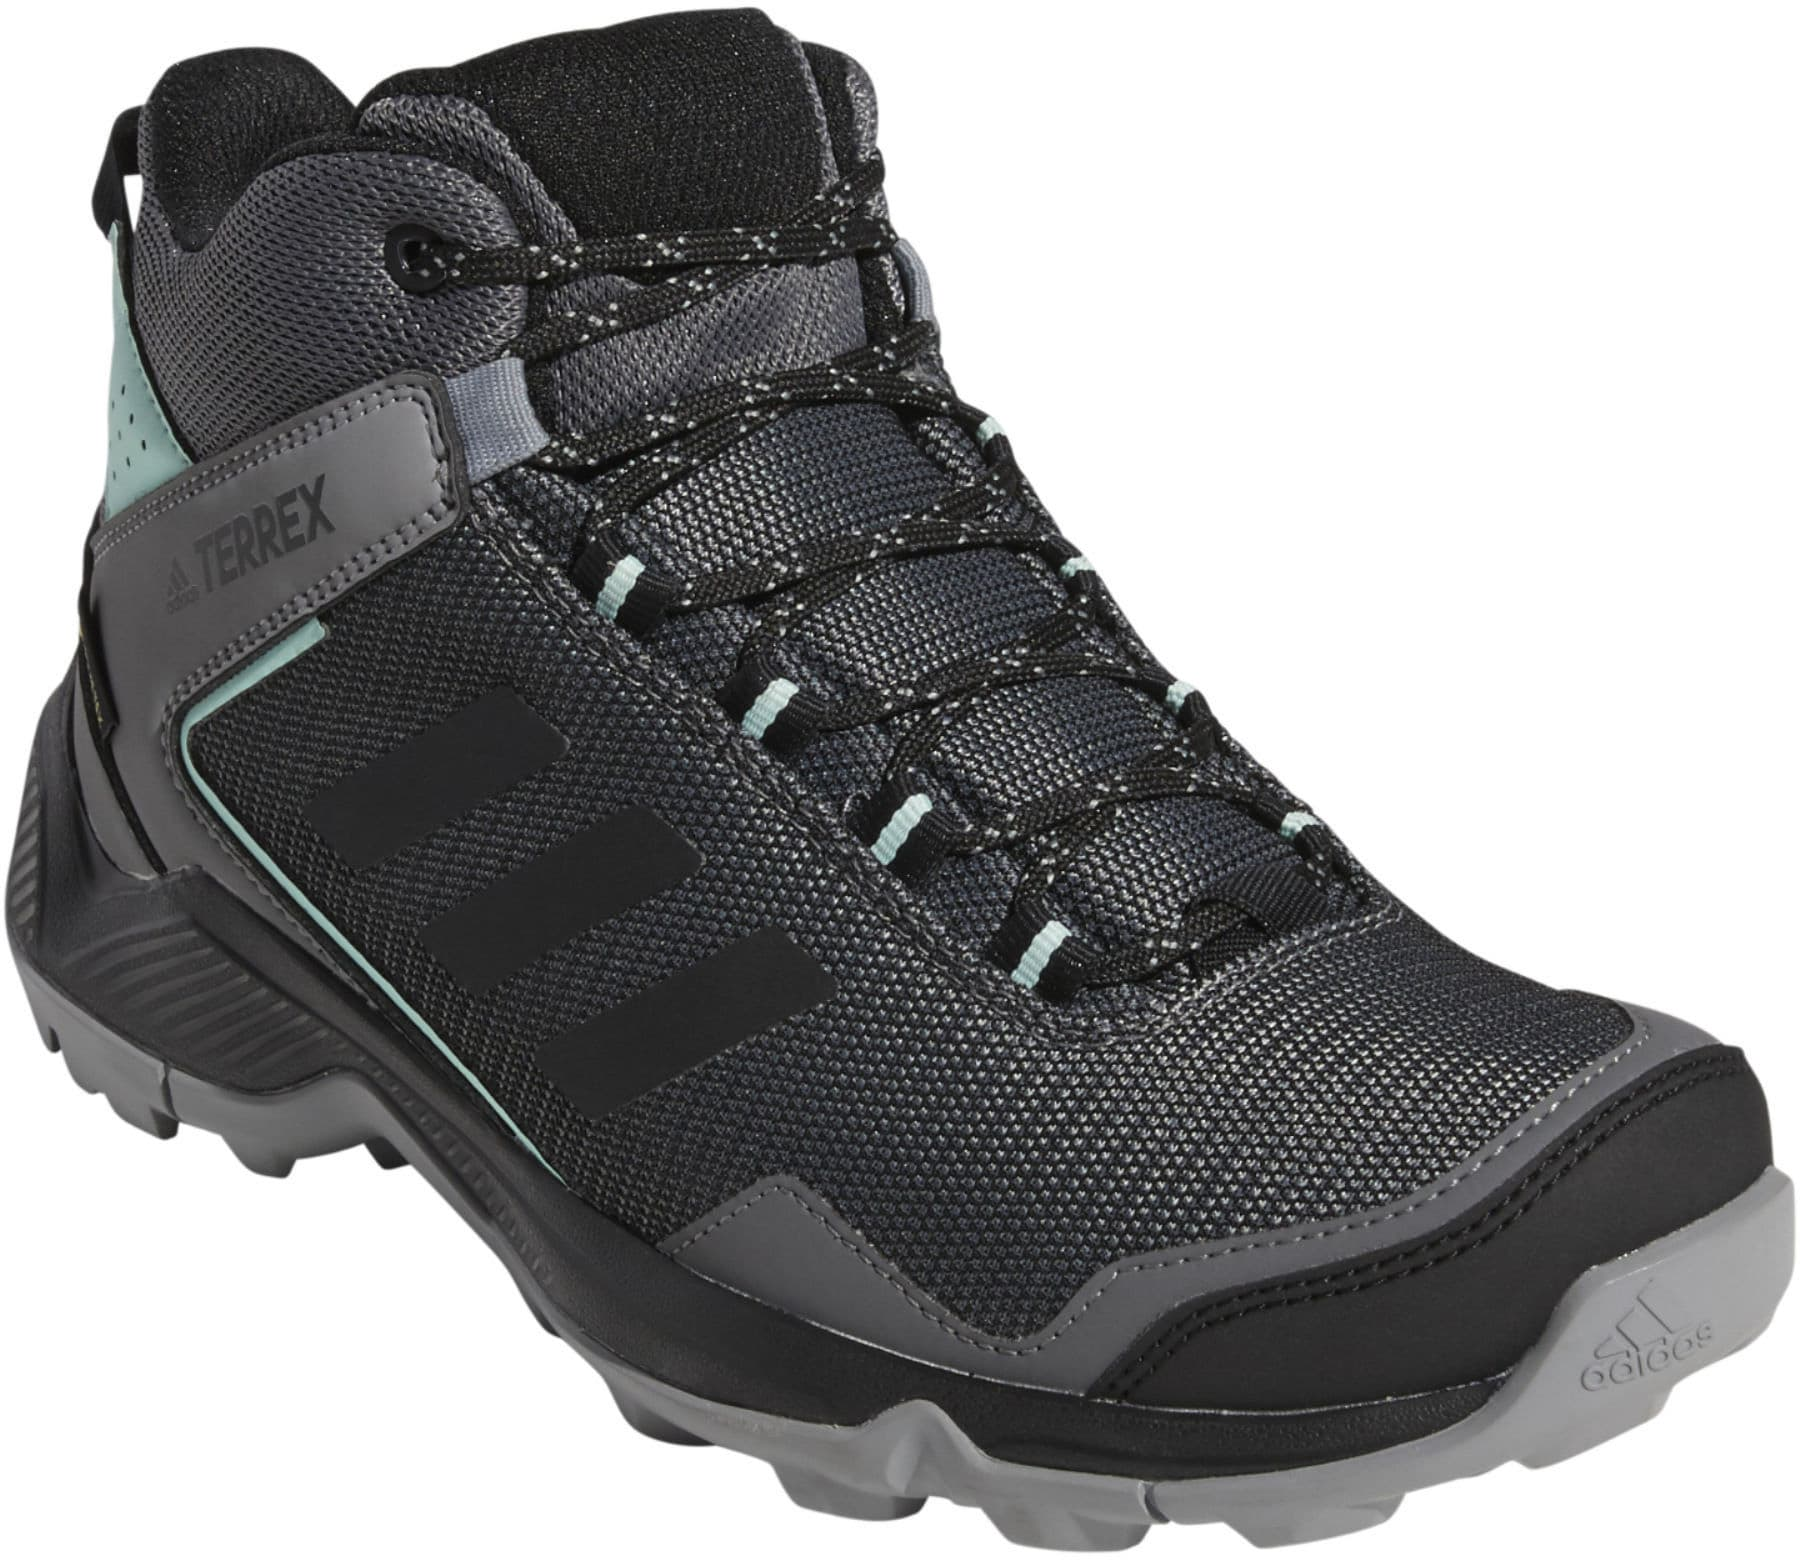 adidas terrex eastrail mid gtx hiking boots womens 2019. Black Bedroom Furniture Sets. Home Design Ideas